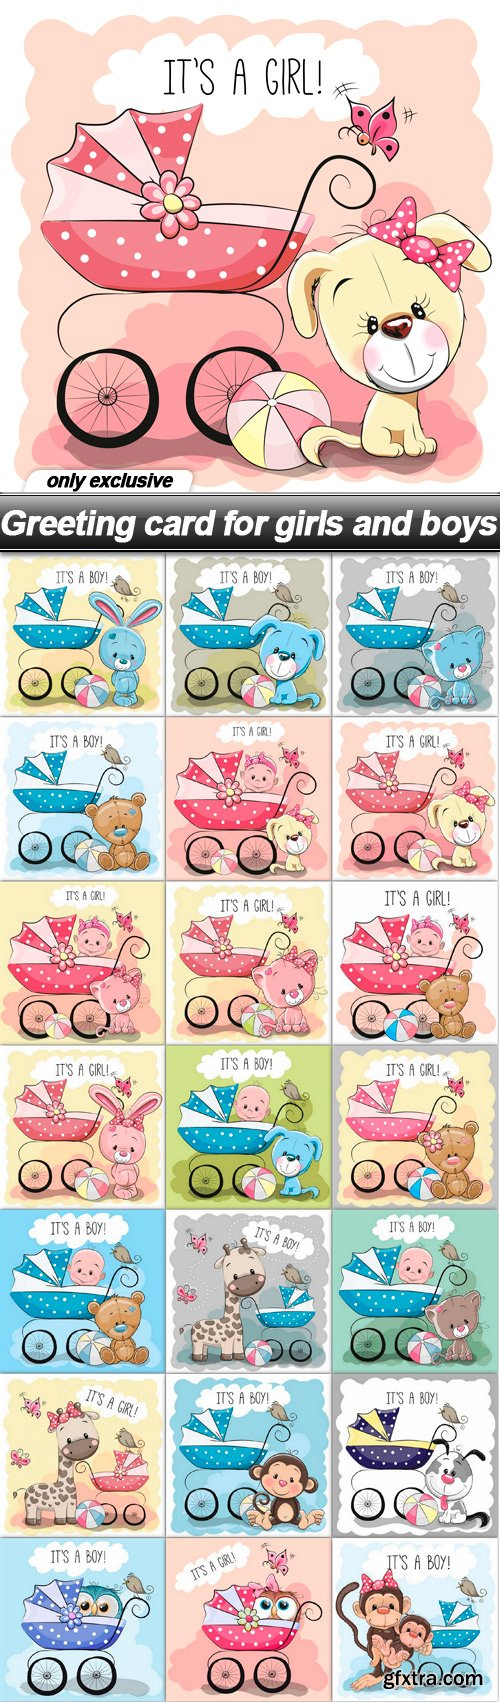 Greeting card for girls and boys - 21 EPS